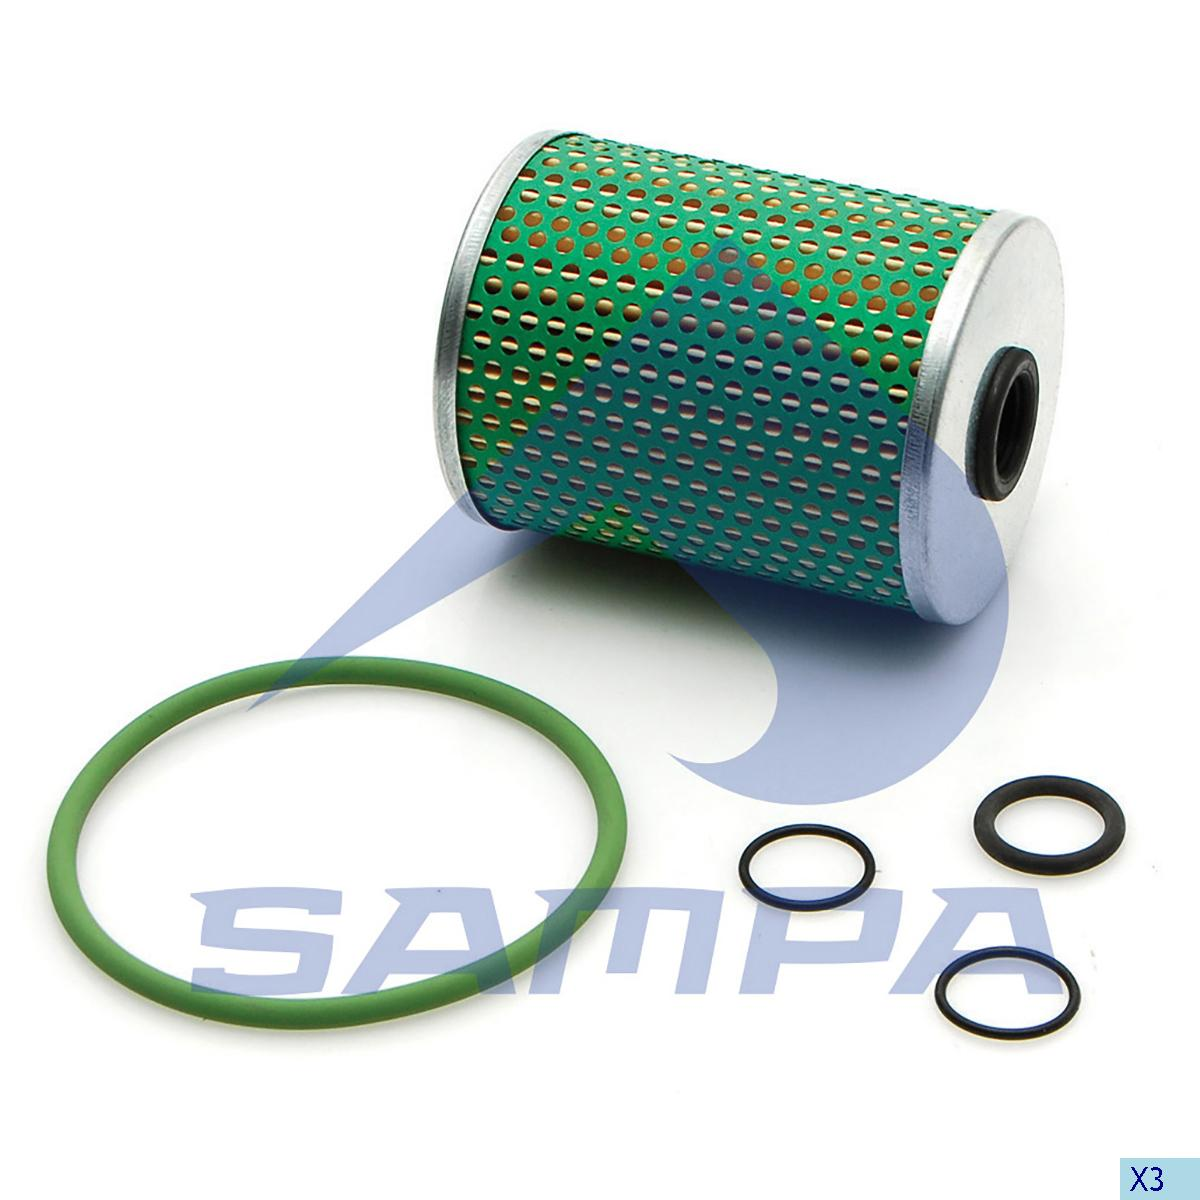 Oil Filter Kit, Retarder, Scania, Gear Box